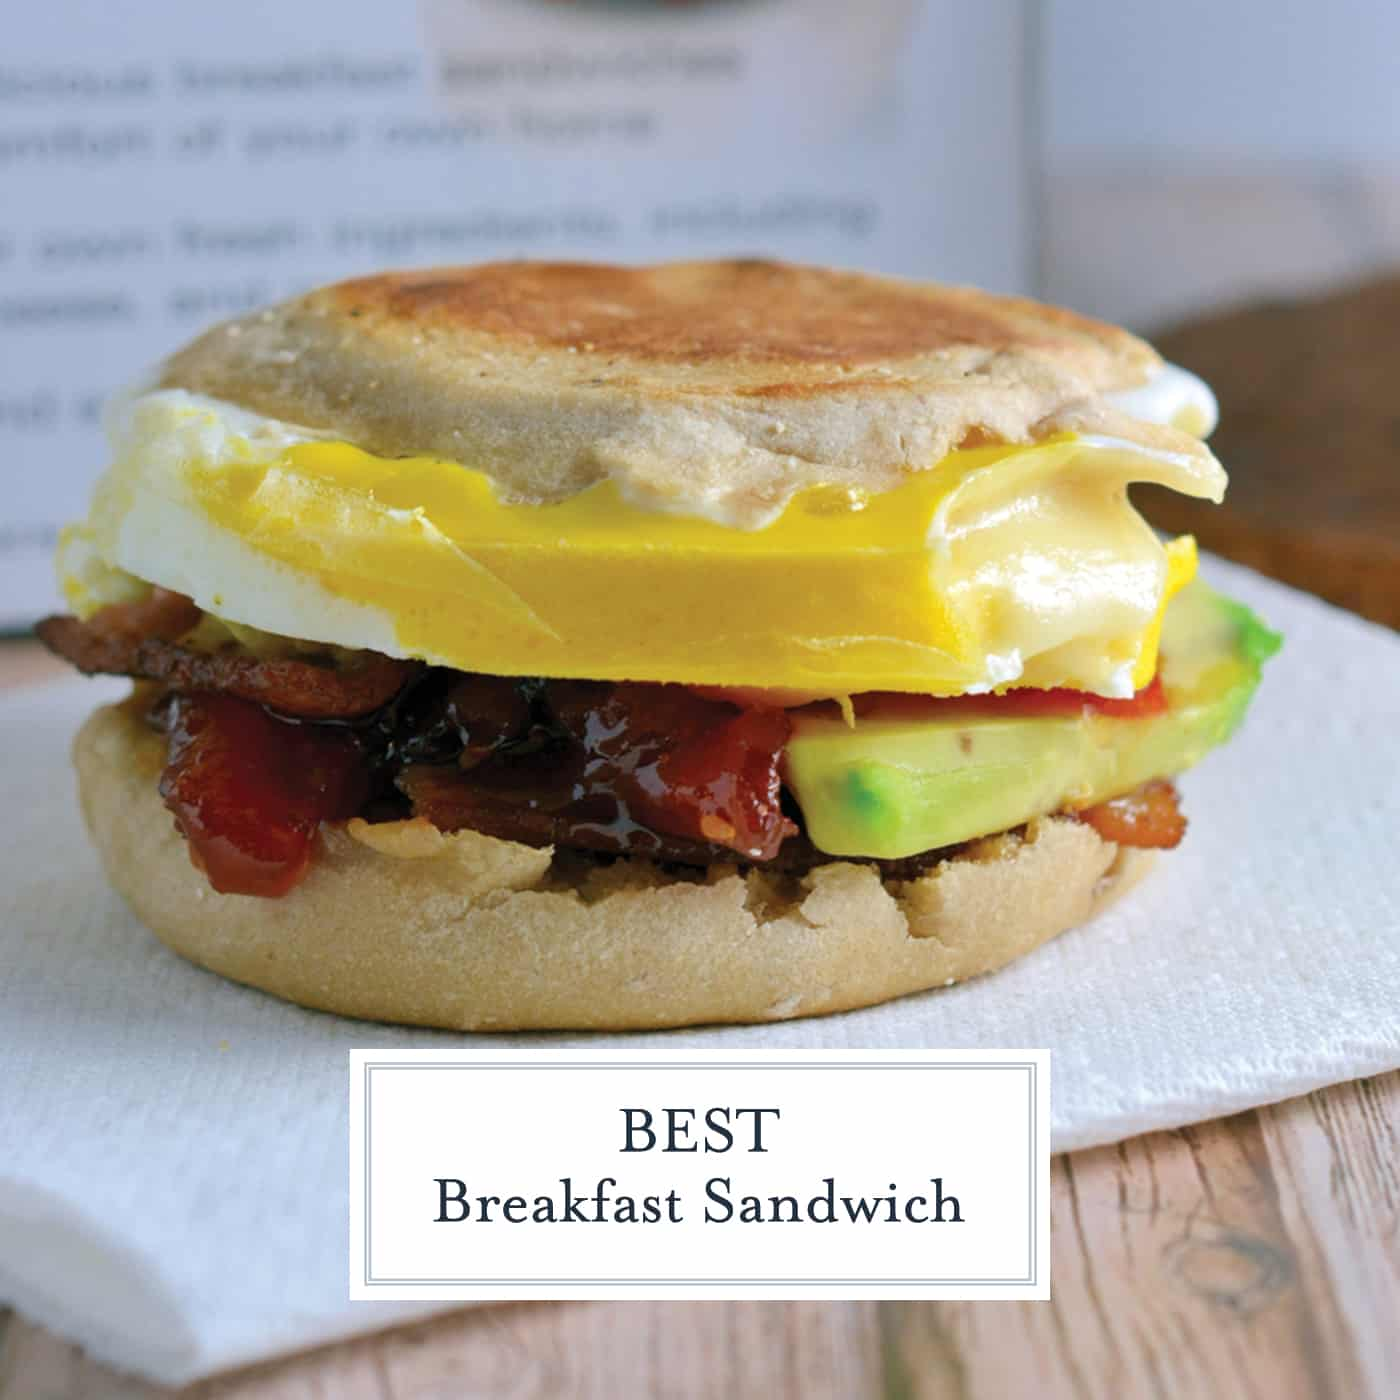 What makes this the BEST Breakfast Sandwich? Egg, provolone, bacon, avocado and one secret condiment! Come see to find out! #easybreakfastideas #breakfastsandwich www.savoryexperiments.com